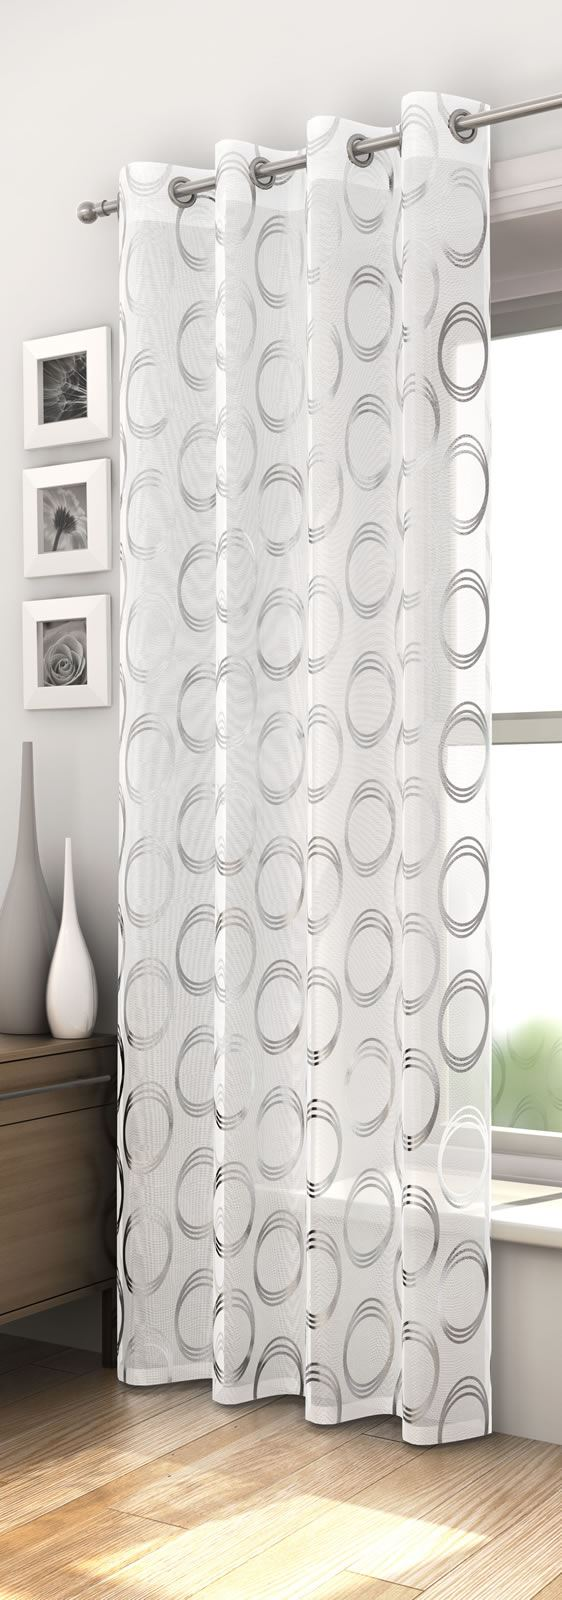 MEXICO RETRO CIRCLE PATTERN VOILE CURTAIN PANEL READY MADE RED BLACK ...